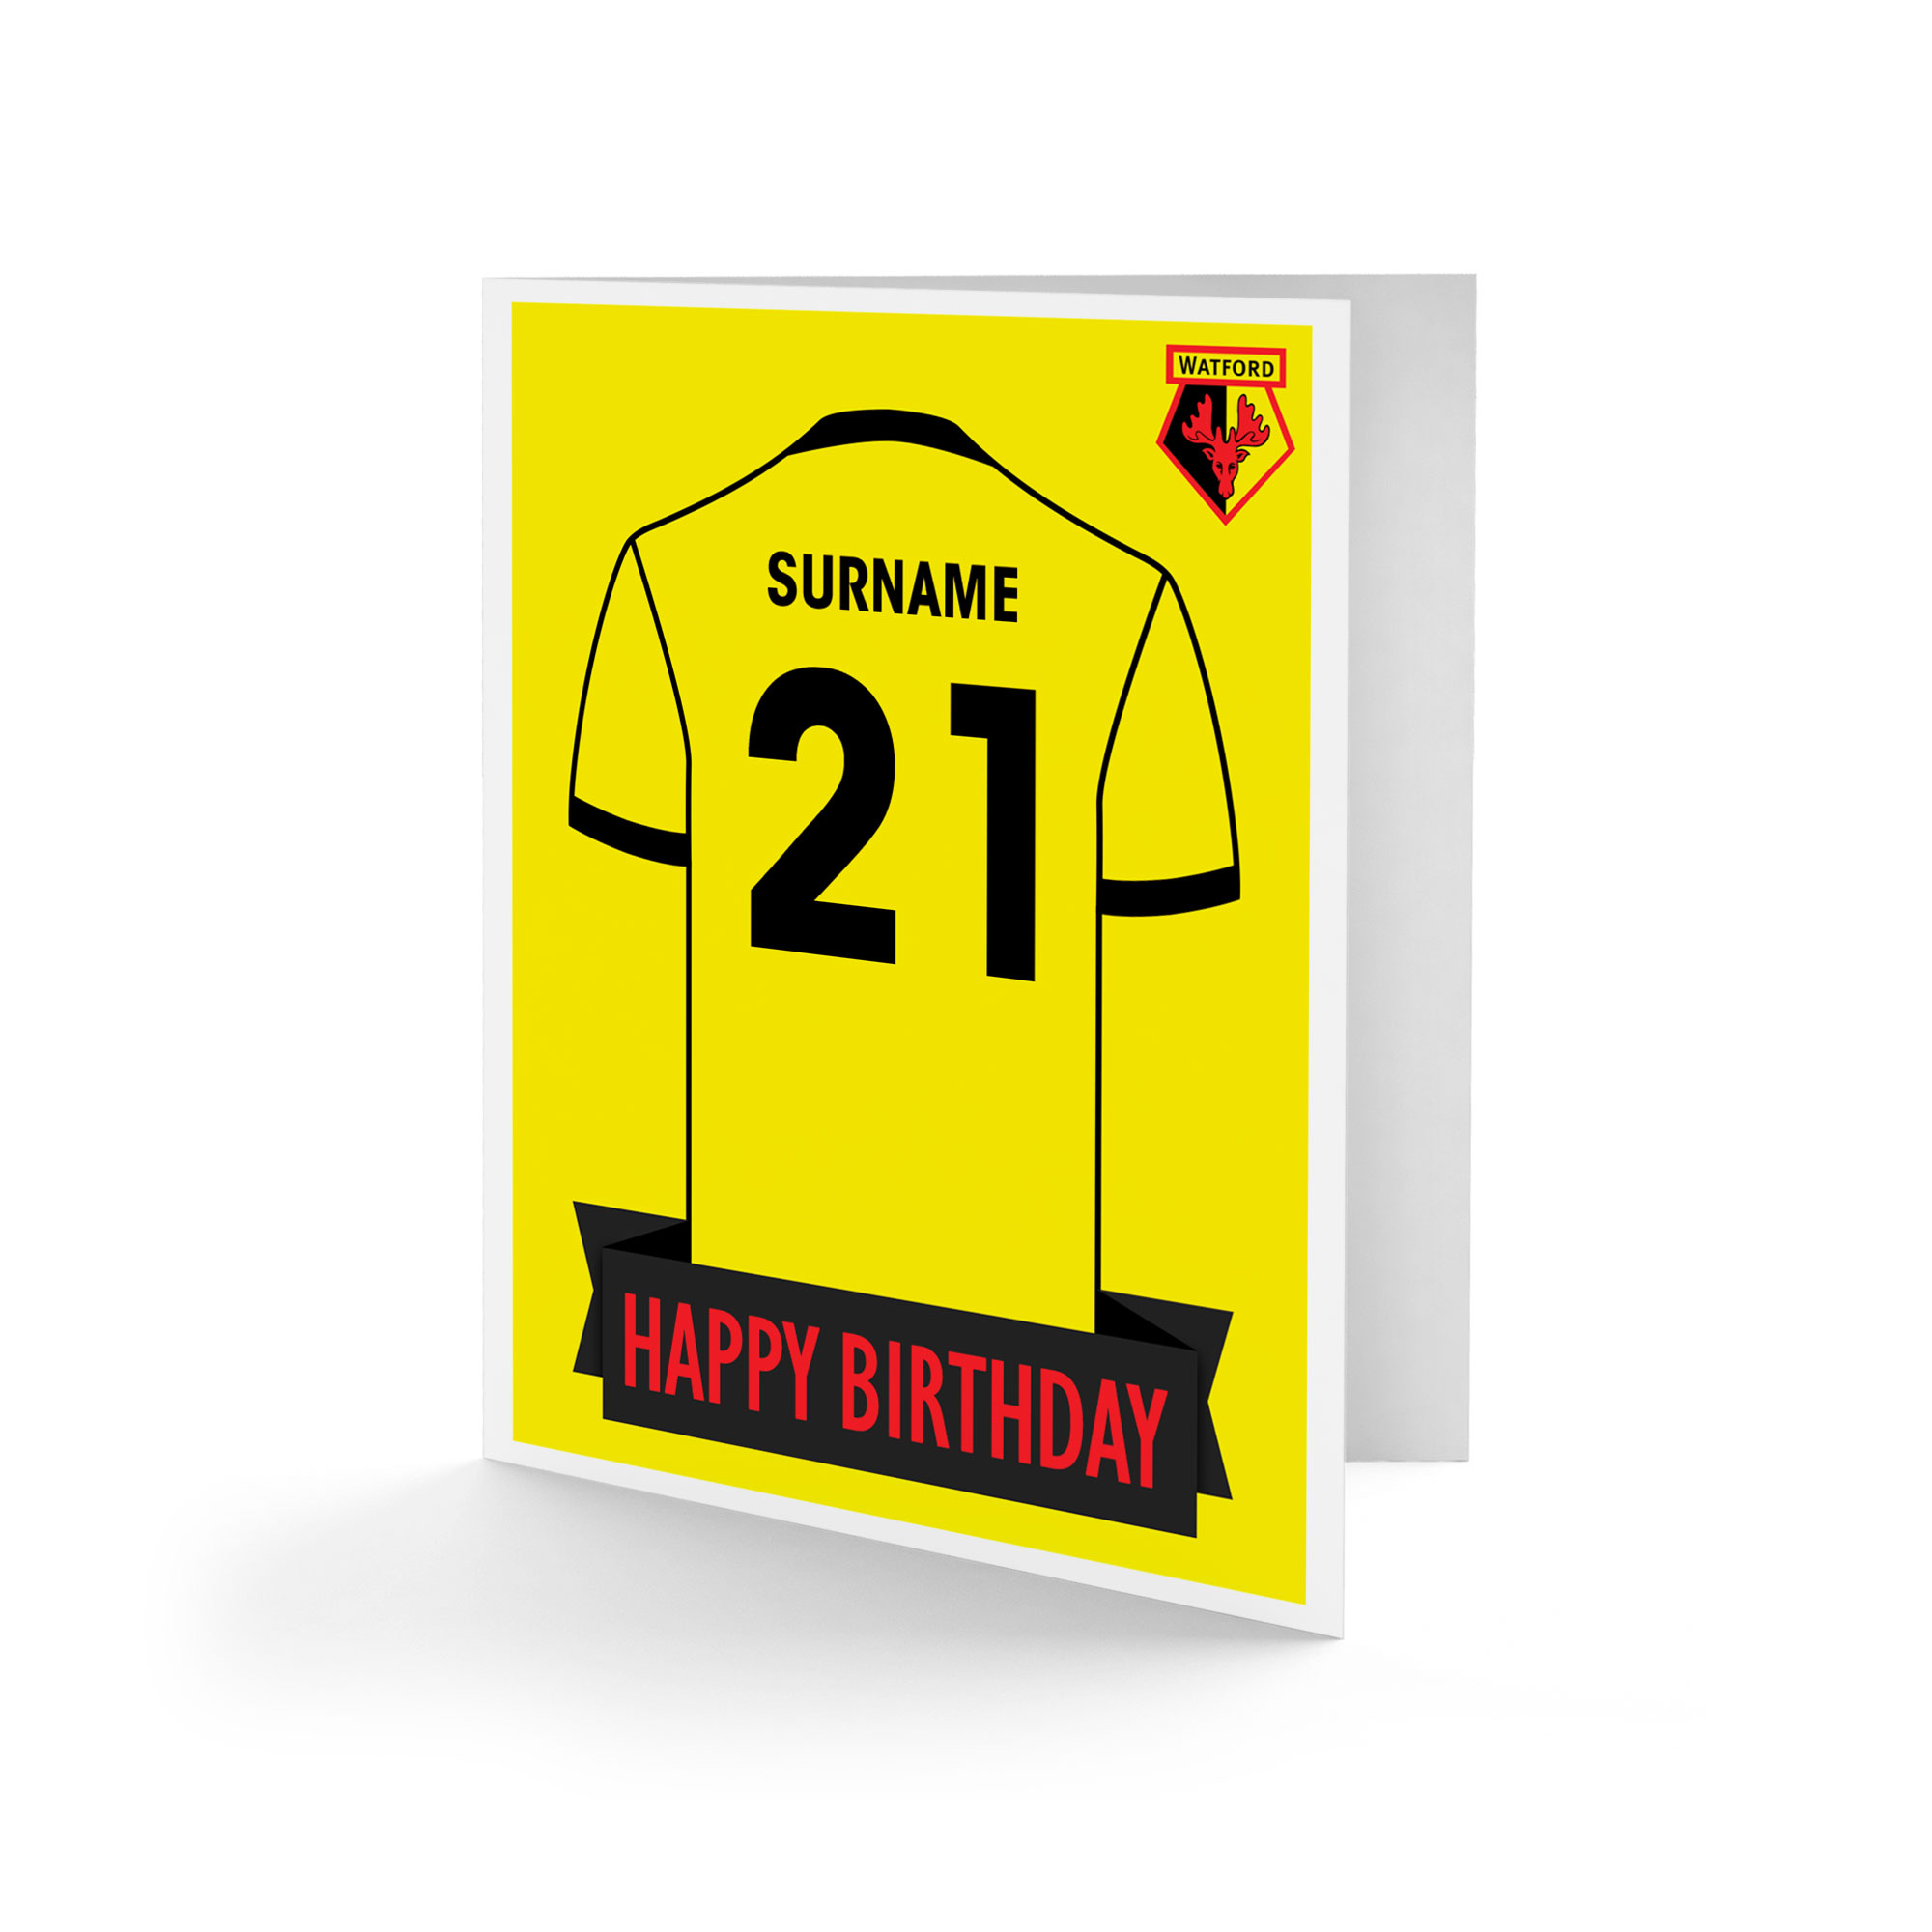 Watford FC Shirt Birthday Card